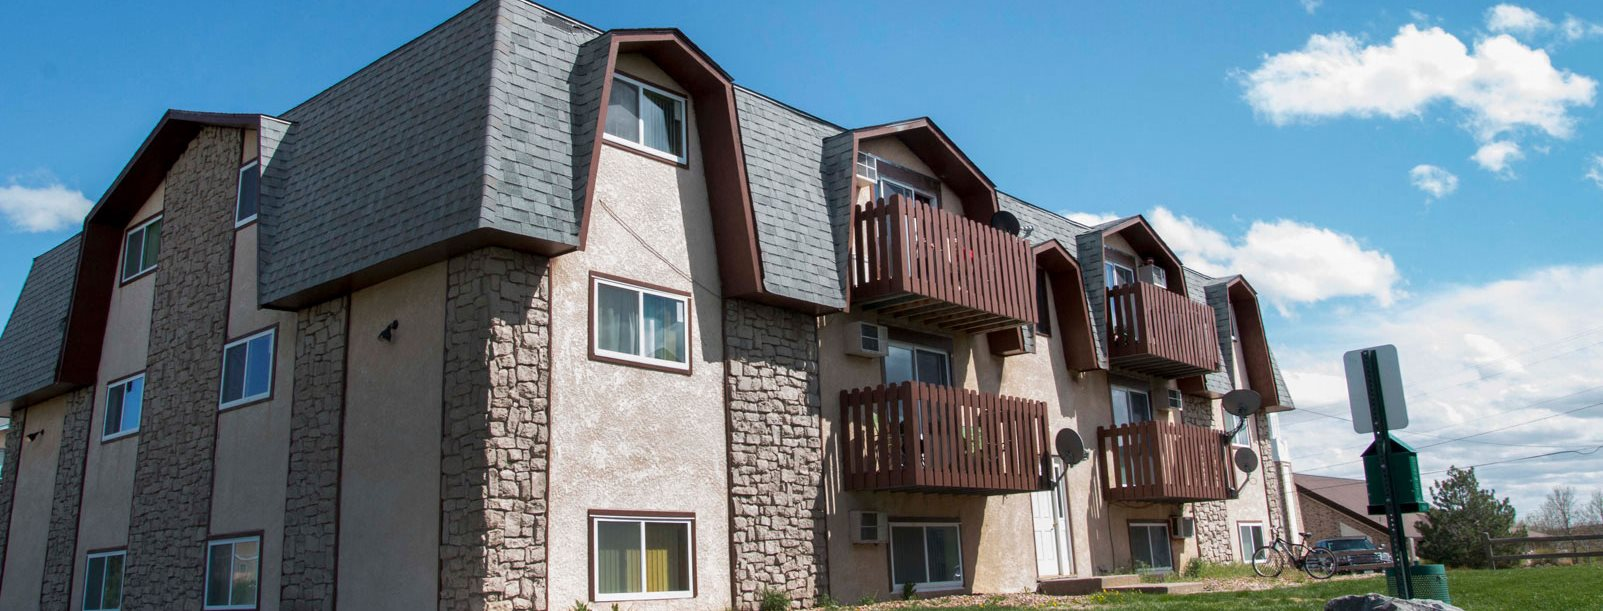 Great Plains Apartments Apartments In Alliance Ne